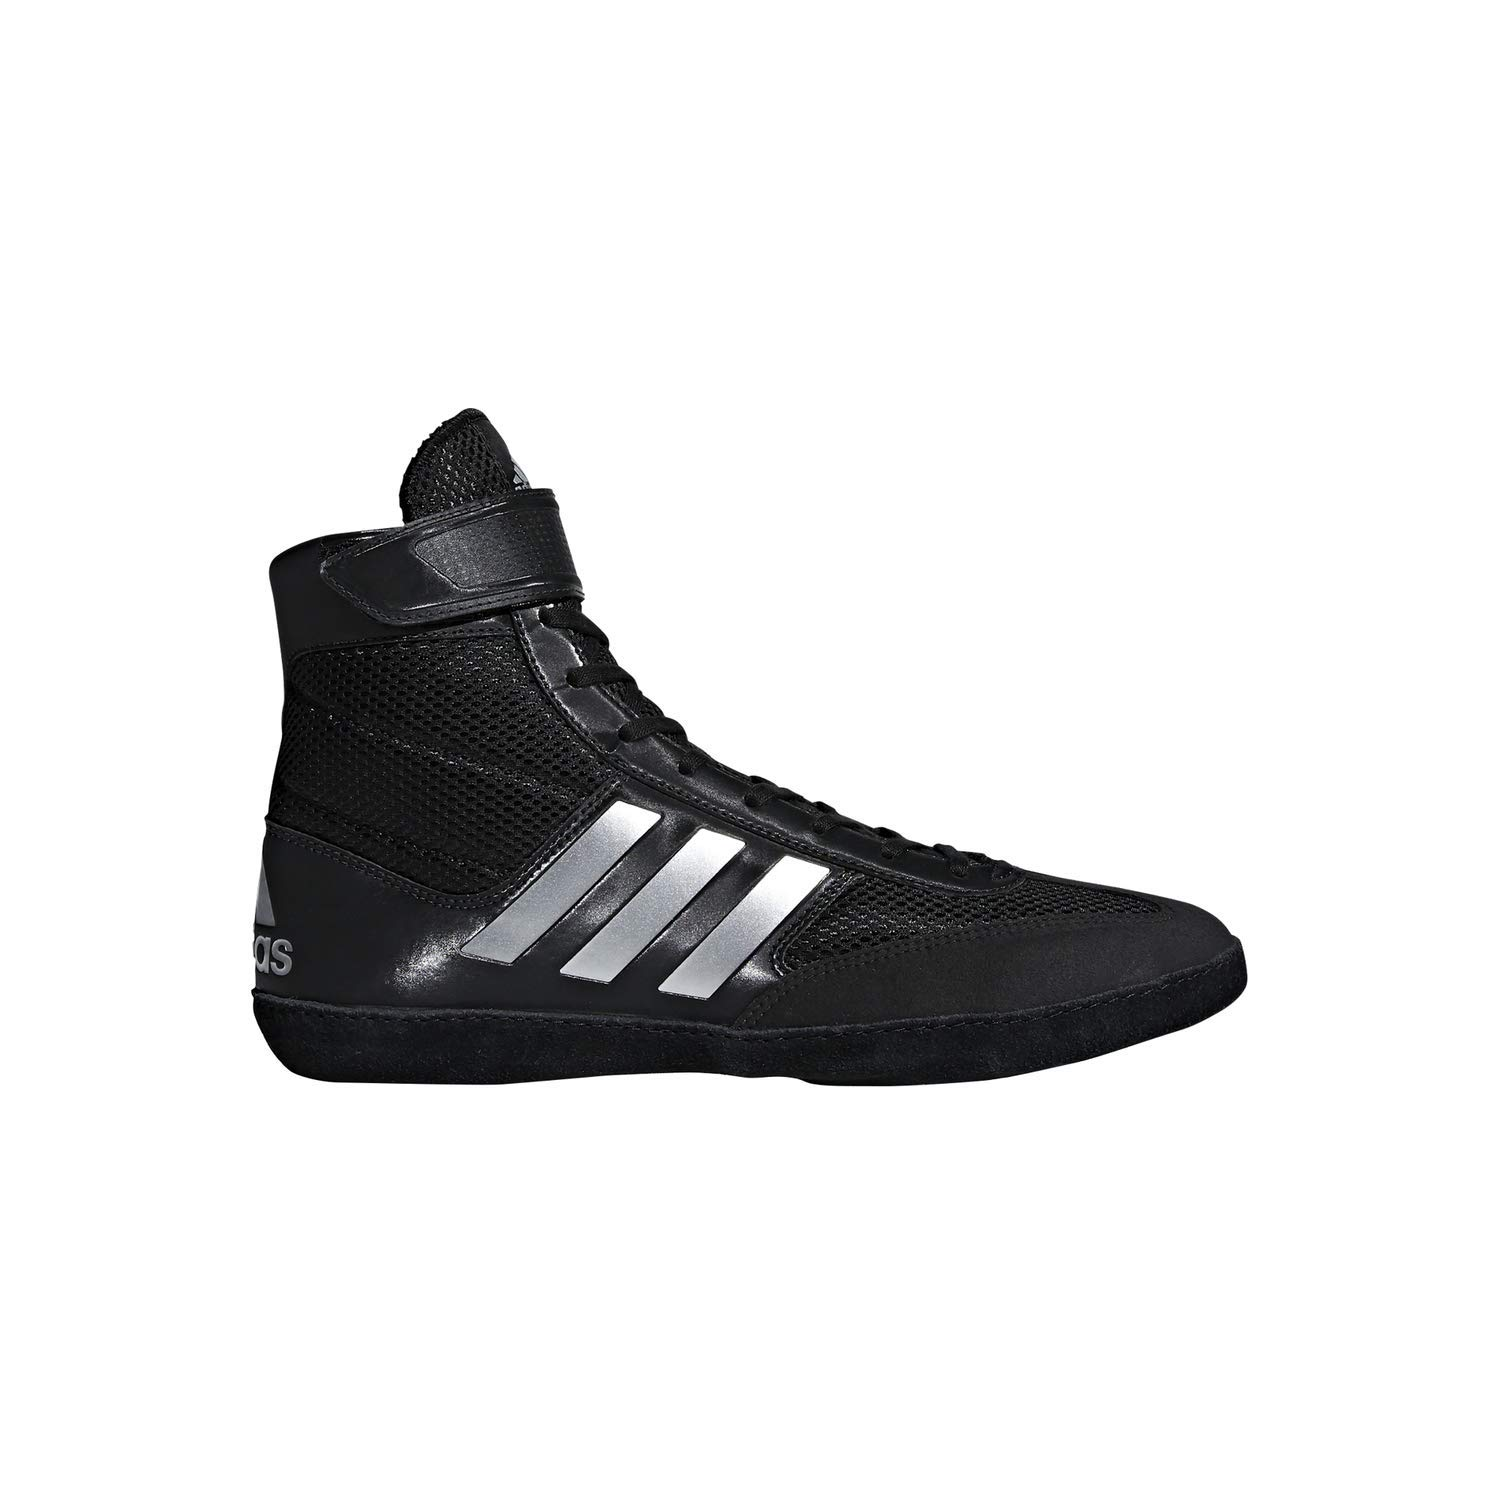 adidas Men's Combat Speed.5, Silver Metallic/Black, 5 M US